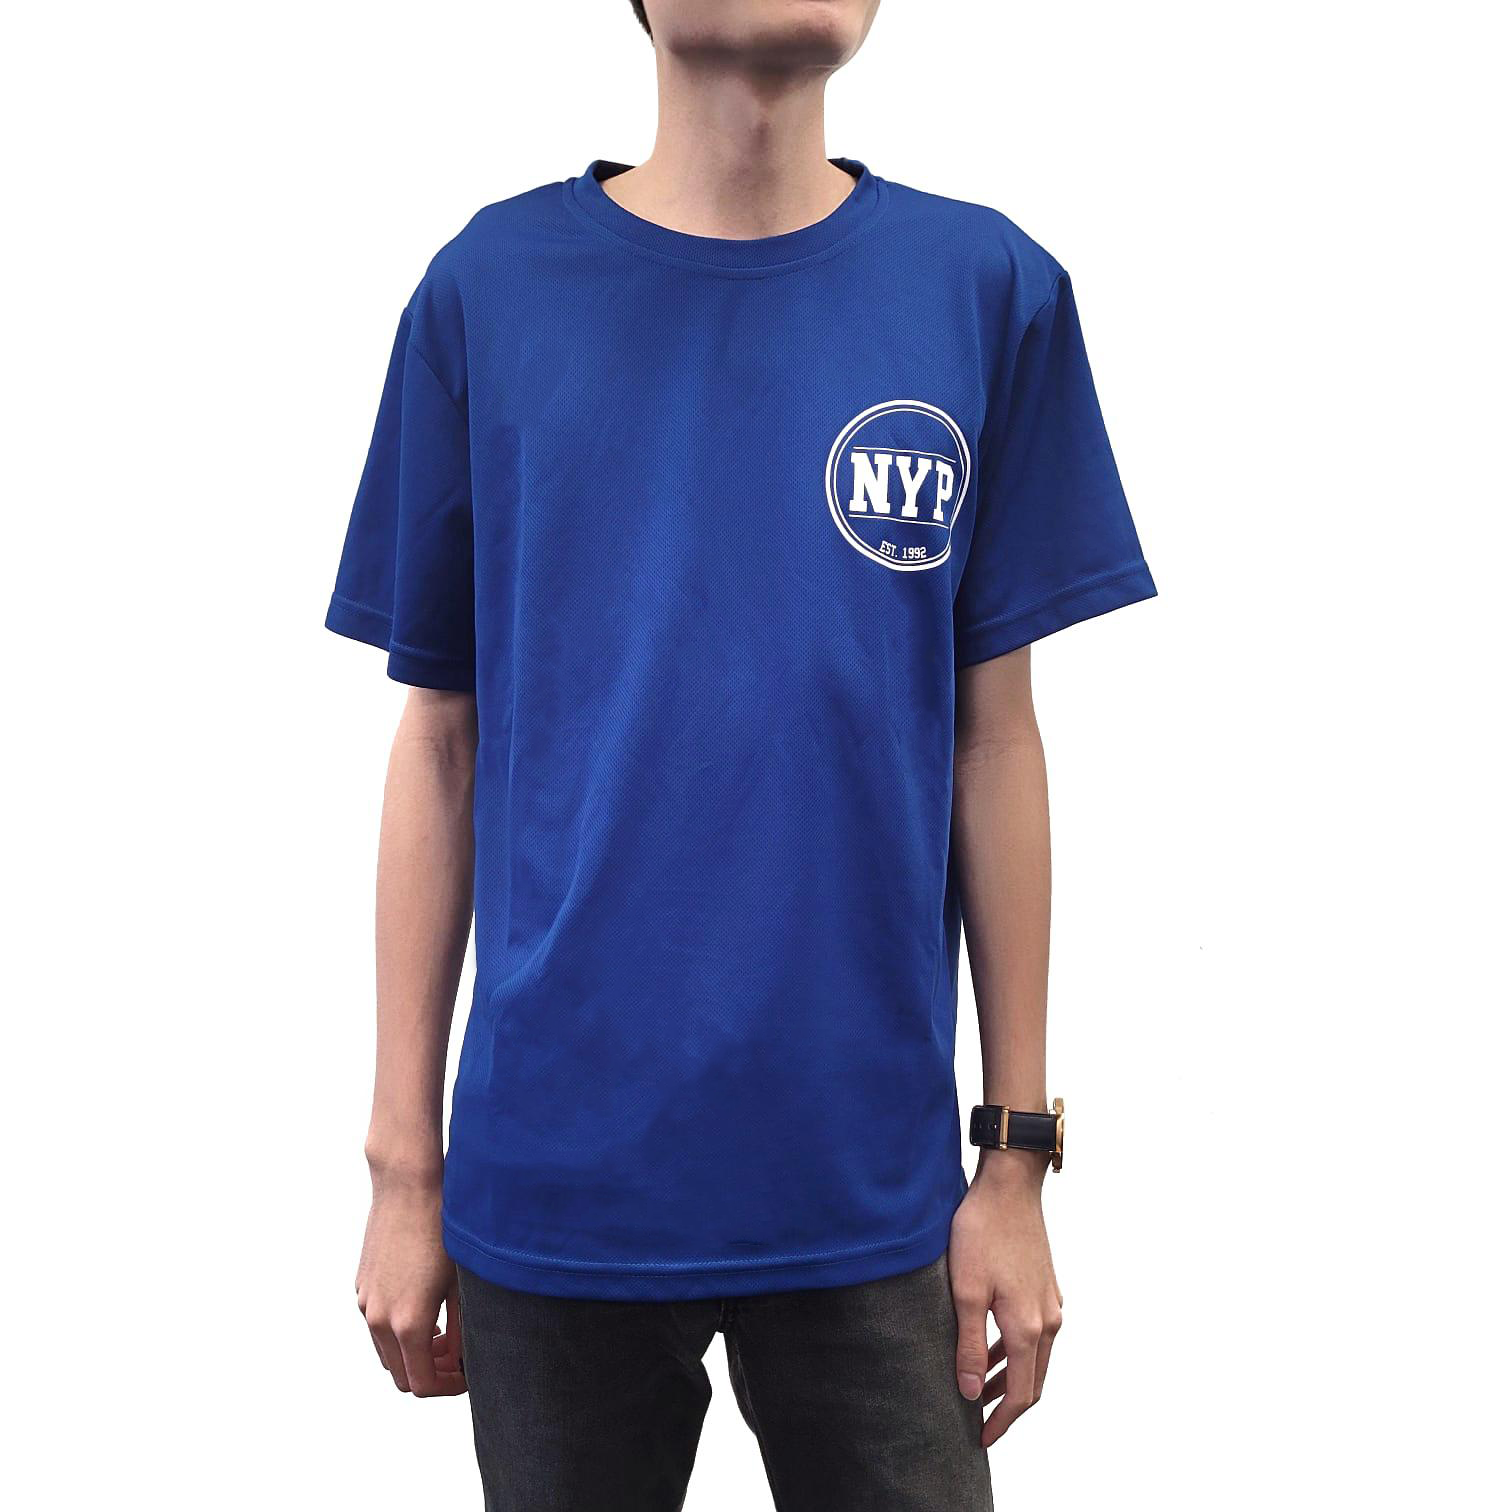 NYP LOGO R/N TEE ROYAL BLUE